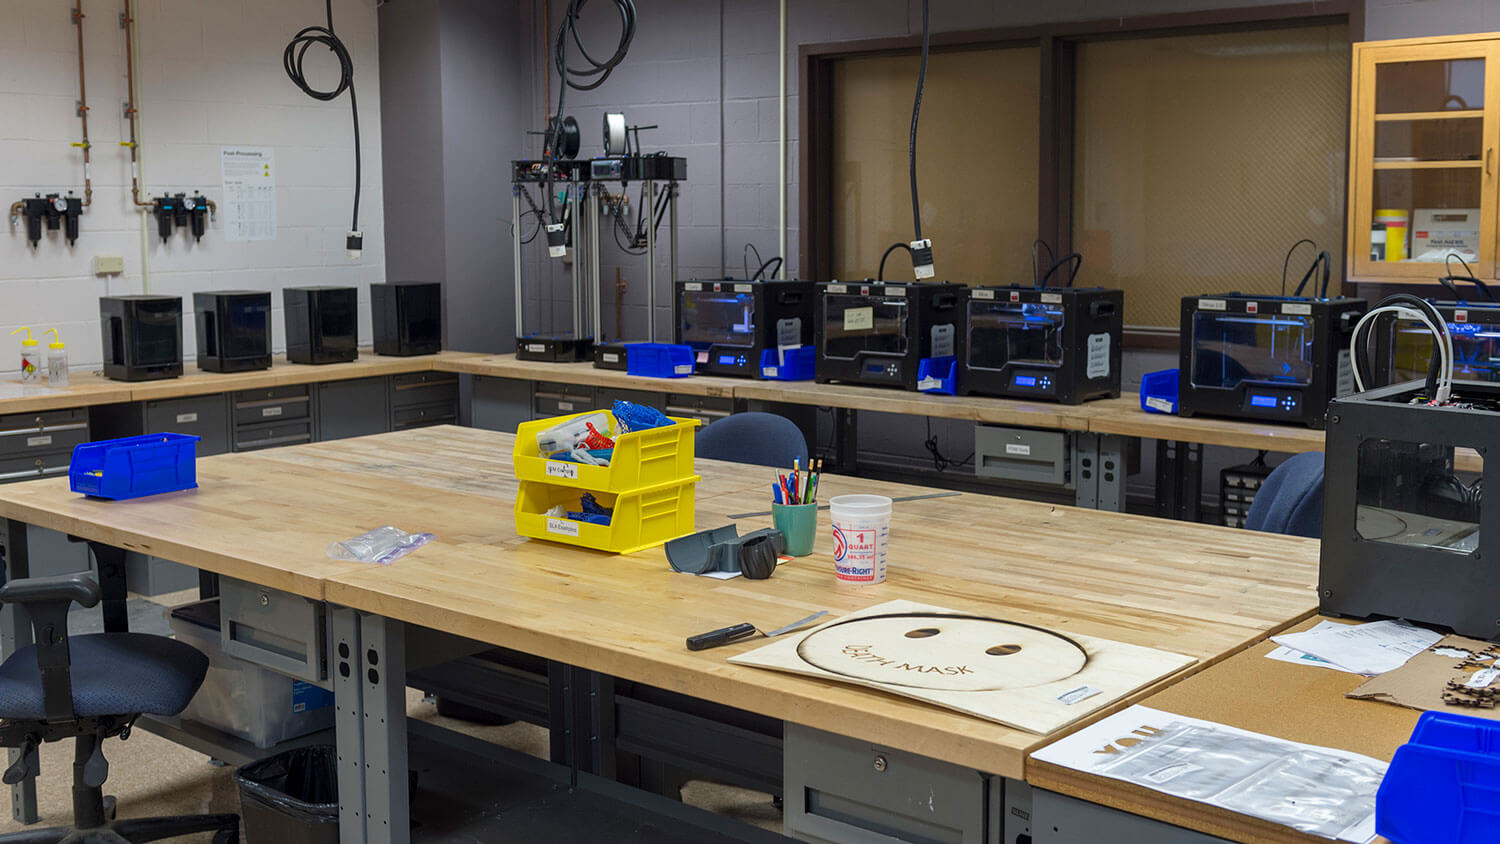 A look at some of the 3D printing equipment in our Fab Lab.